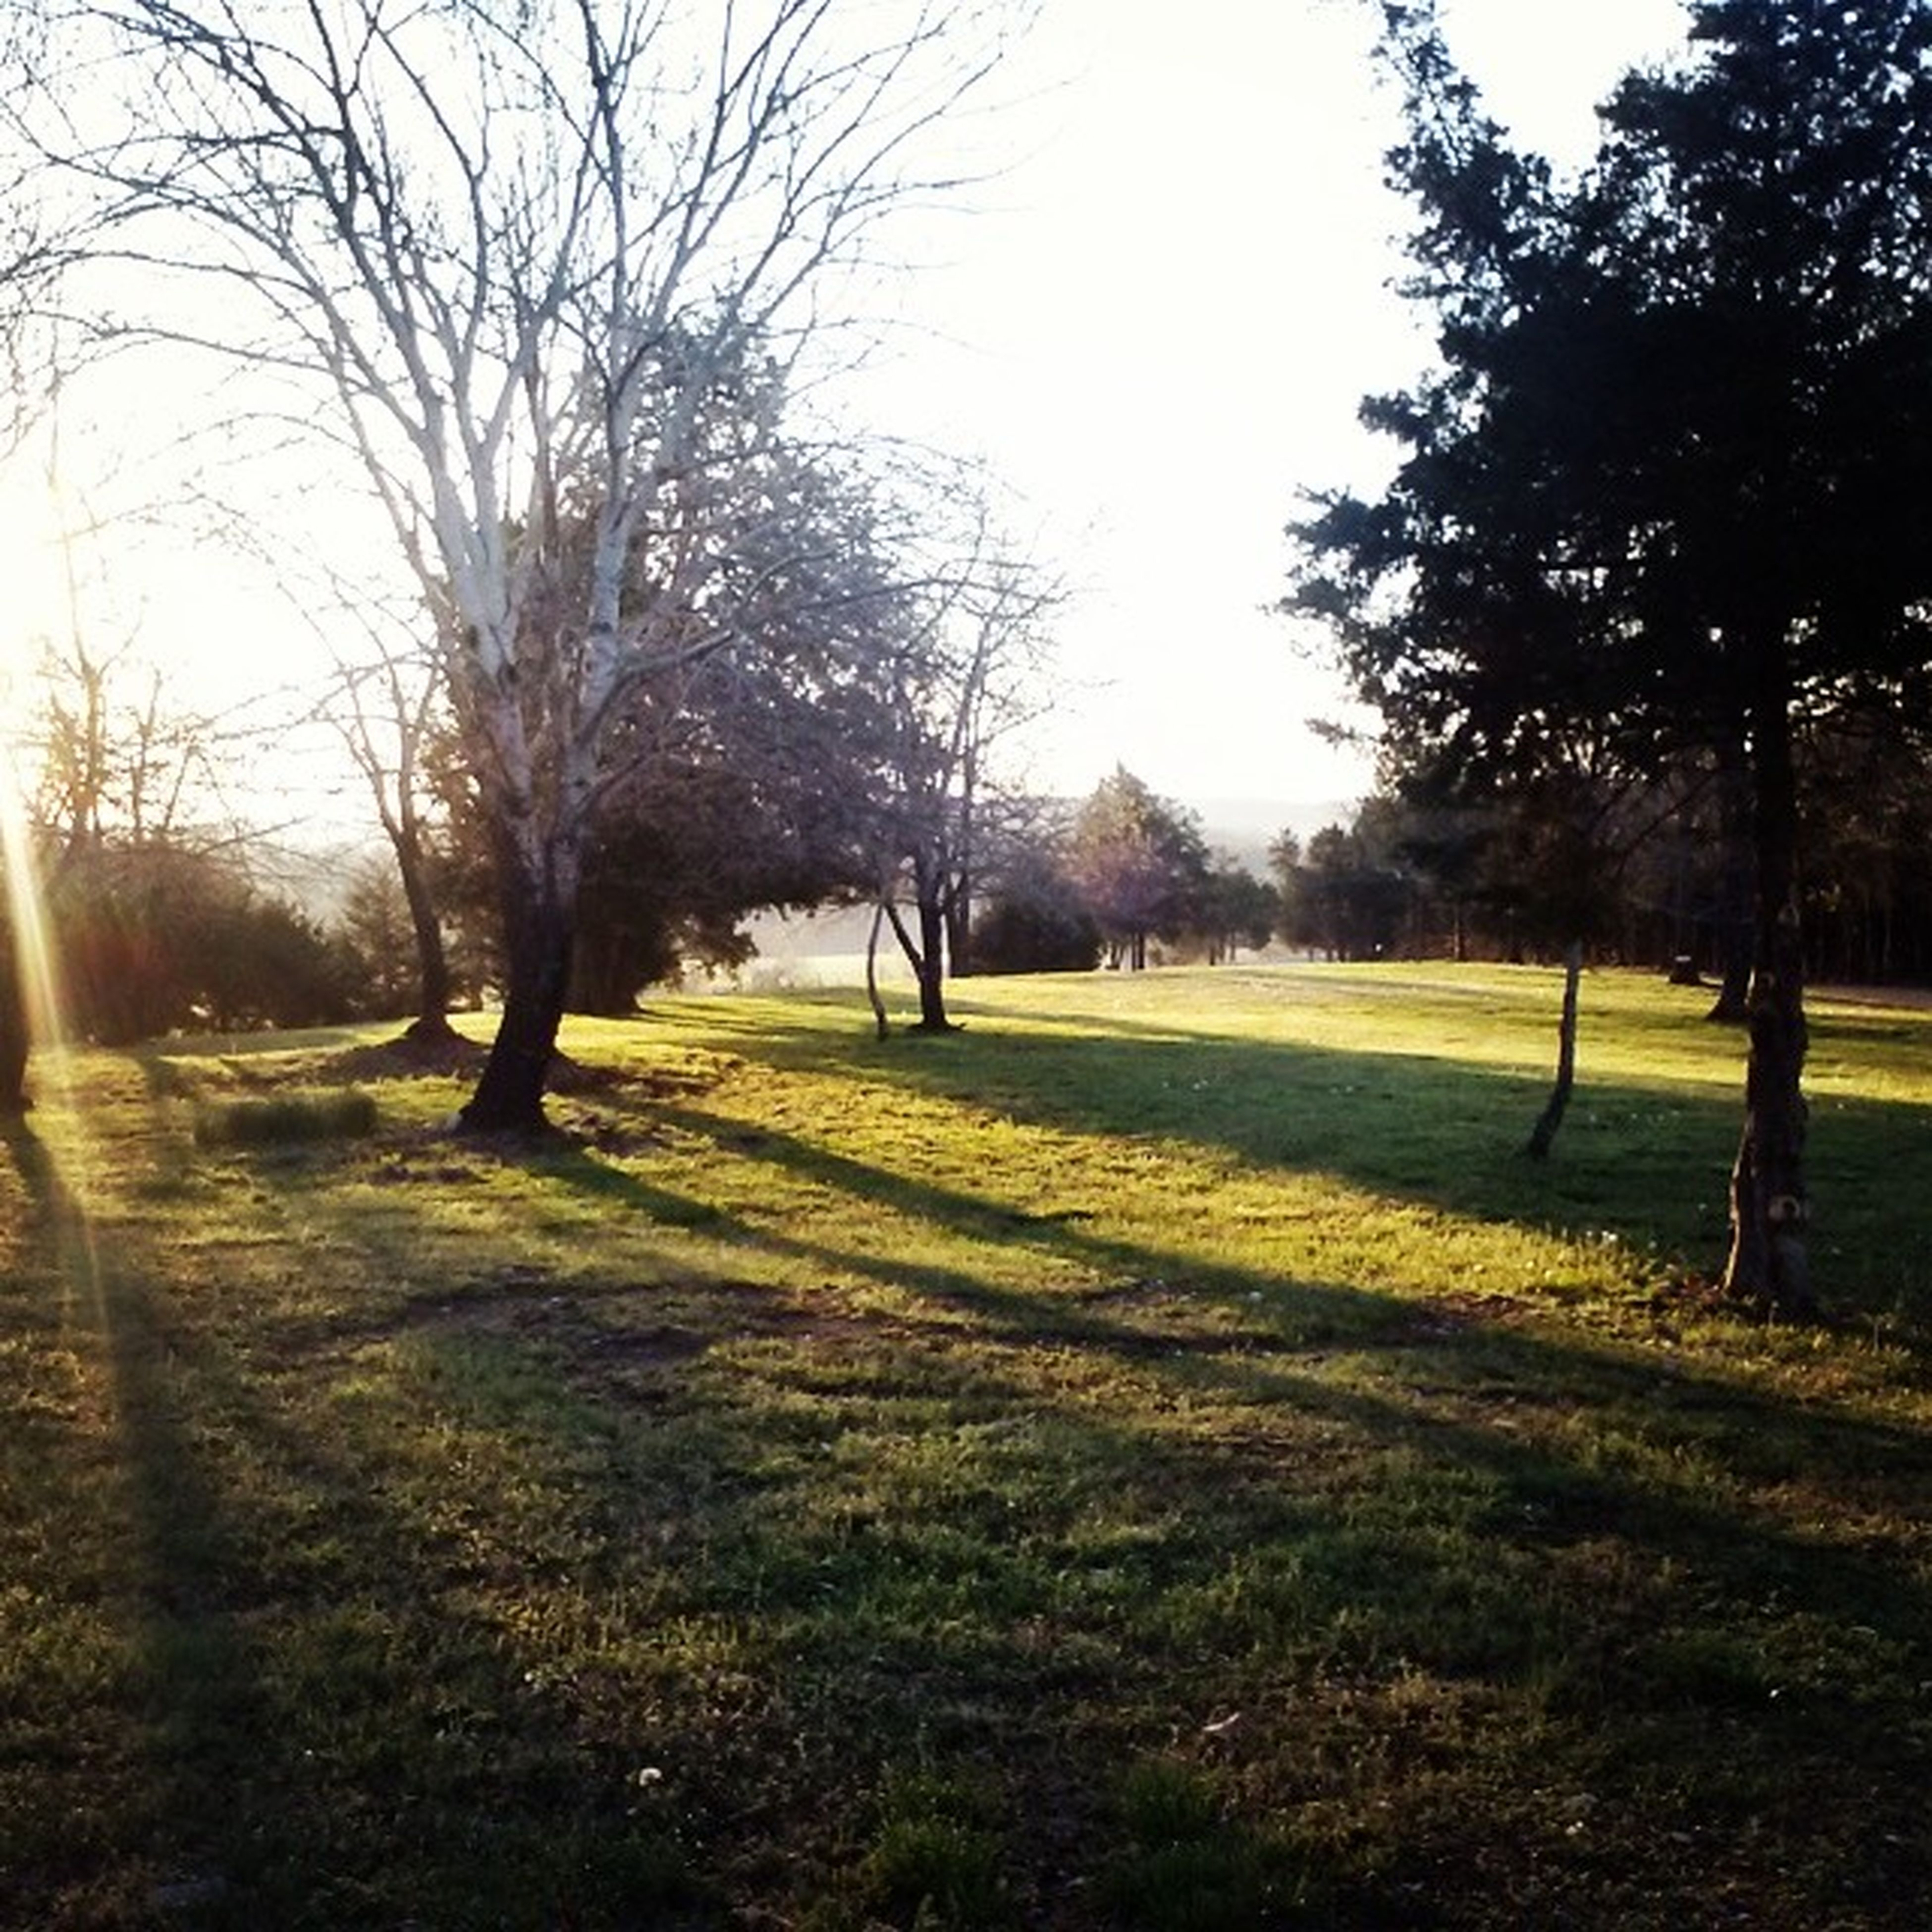 tree, grass, tranquility, bare tree, tranquil scene, tree trunk, field, landscape, nature, the way forward, park - man made space, sunlight, shadow, branch, growth, beauty in nature, scenics, treelined, clear sky, grassy